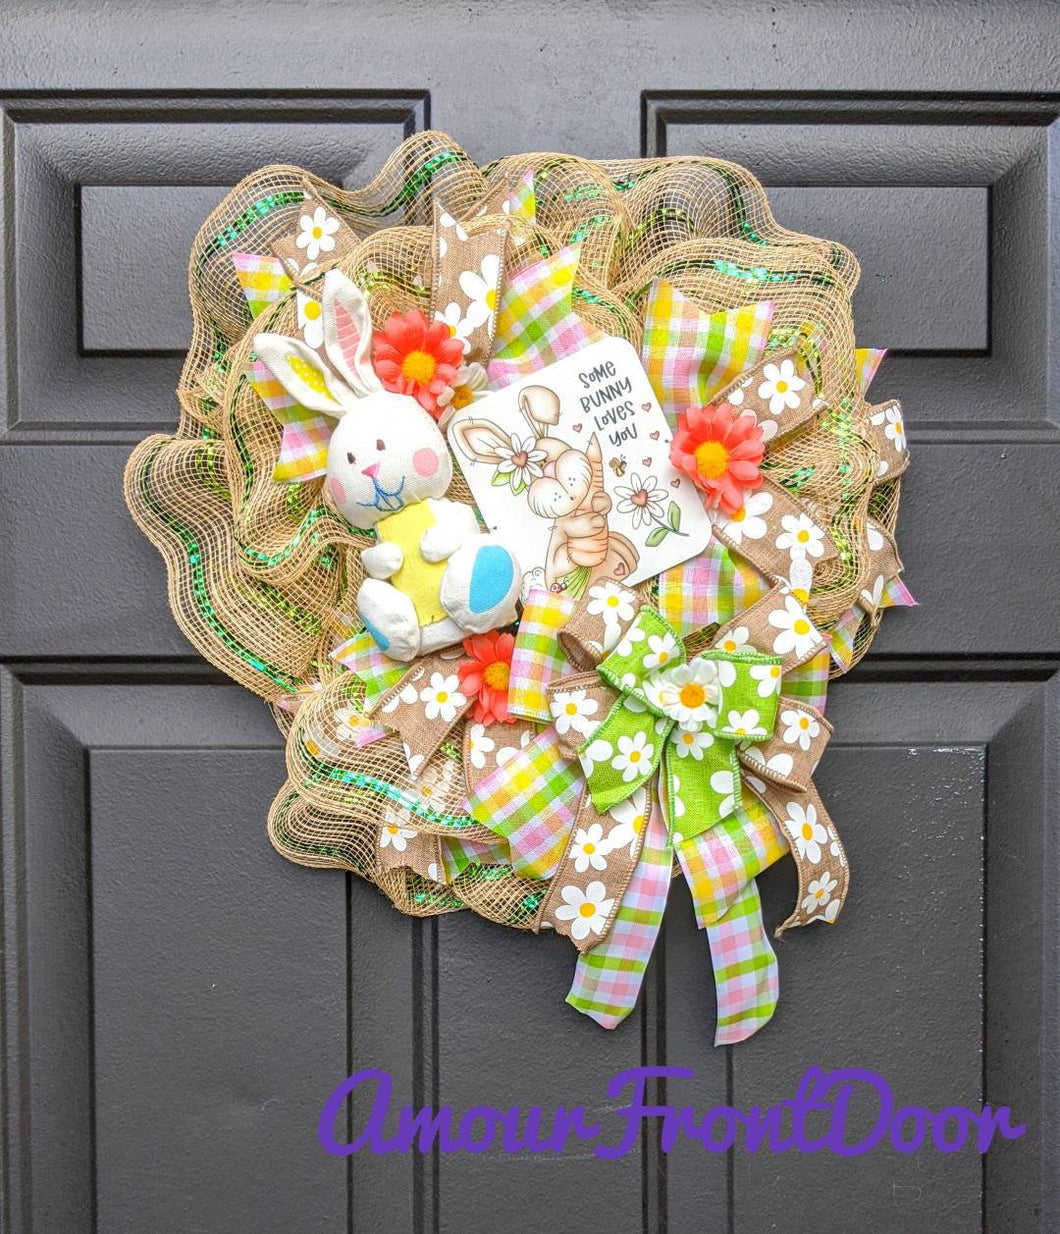 Playhouse Wreath - Petite Wreath - Small Wreath - Pixie Wreath - Indoor Wreath - Small Door Wreath